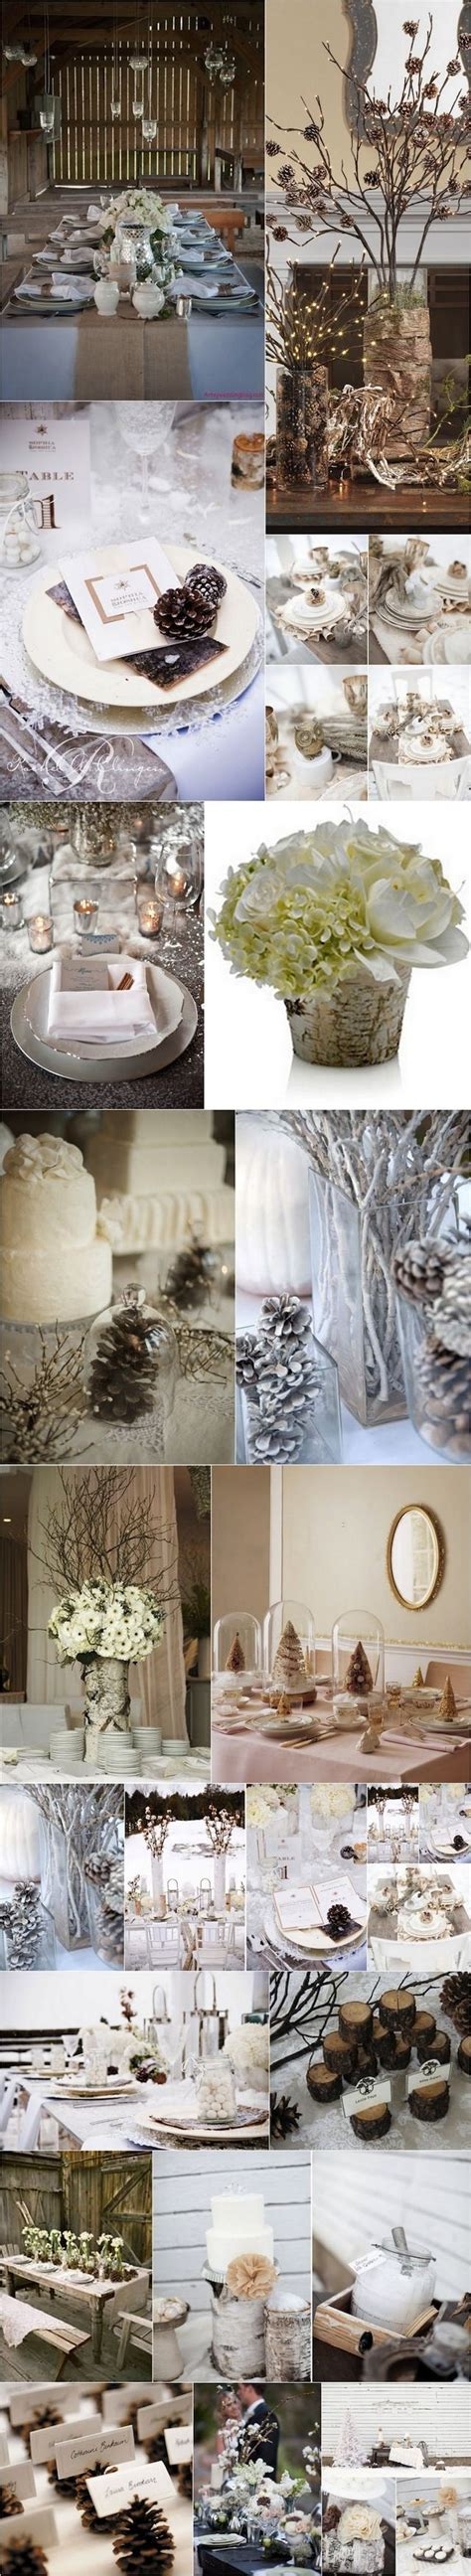 mariage dhiver nature  mariage theme hiver mariage en